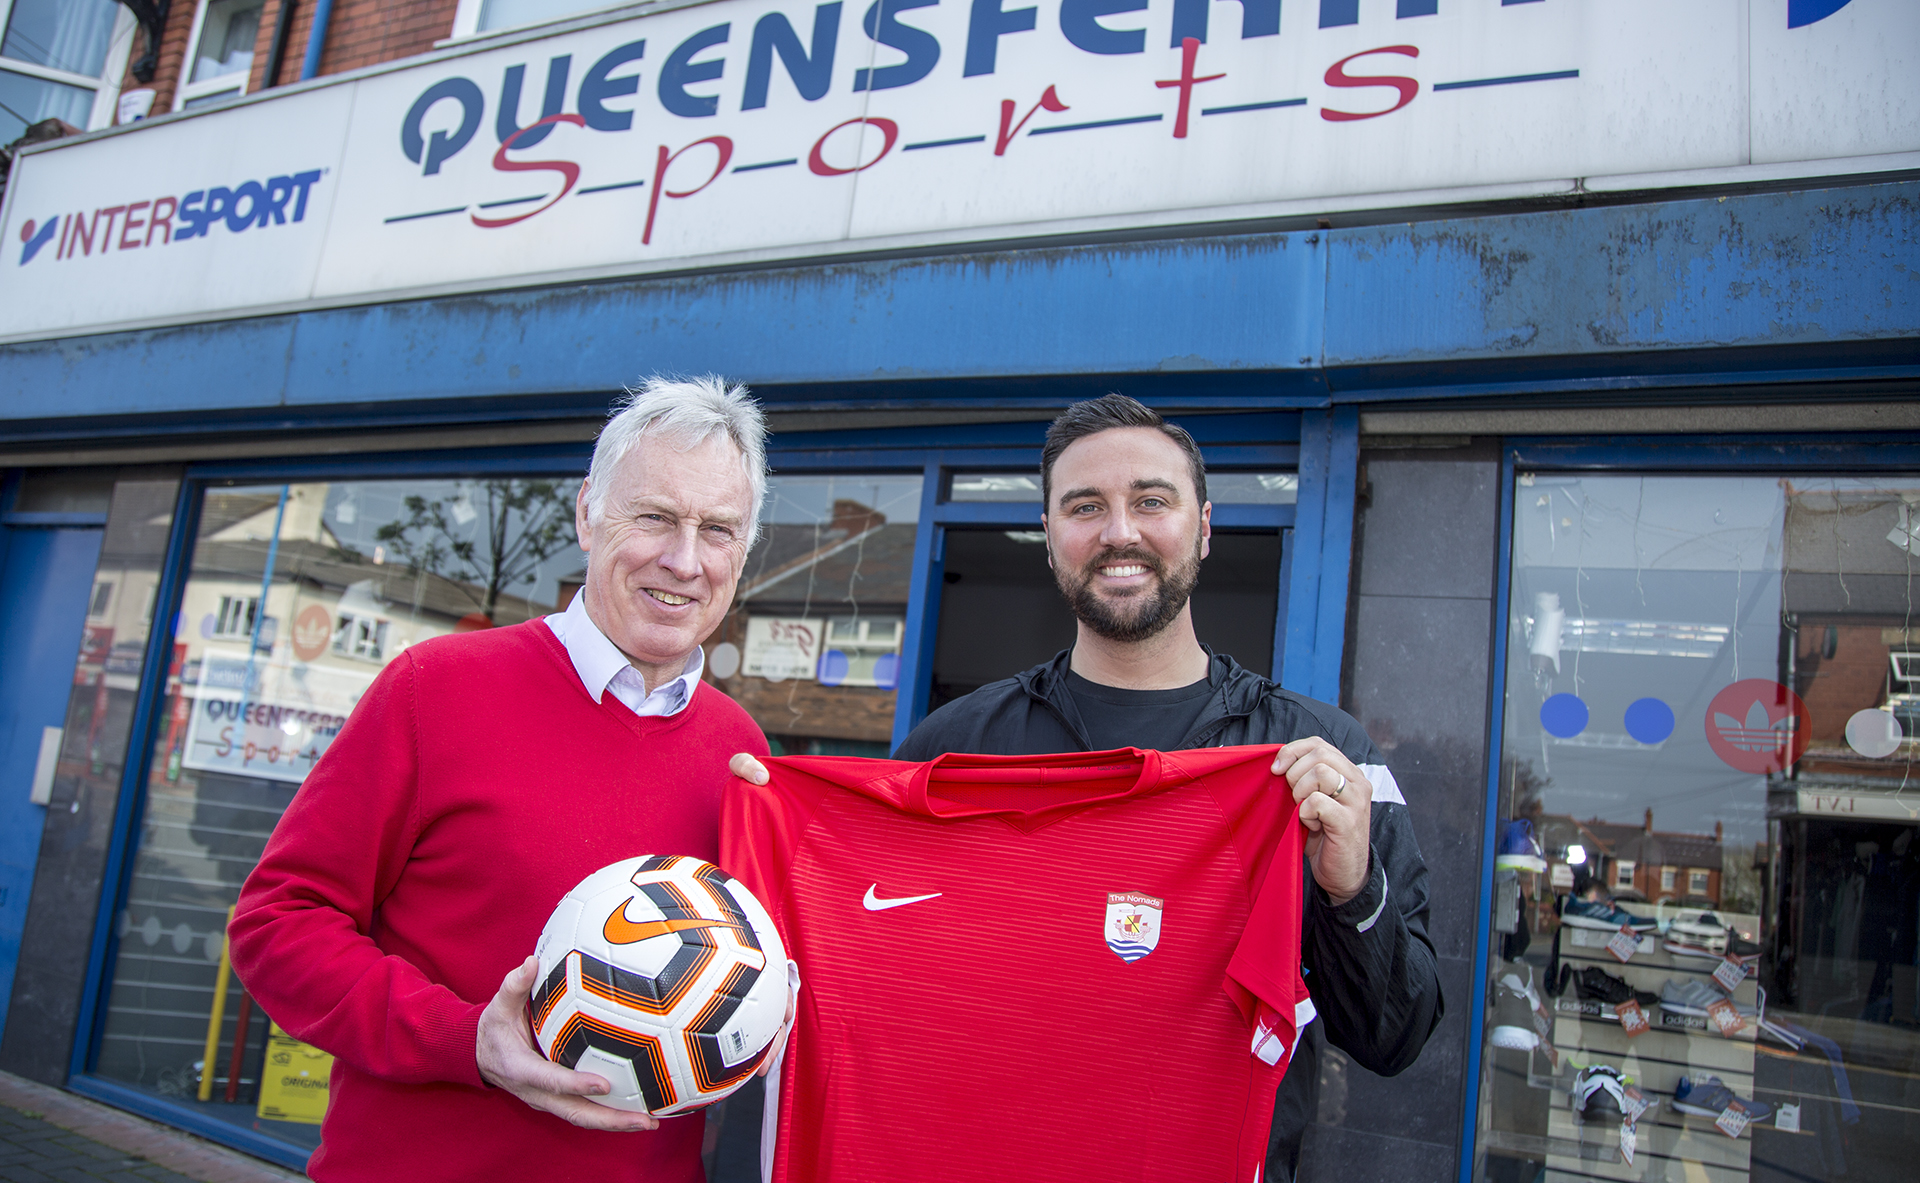 Gary Owen (left) of Queensferry Sports with Director of Football Jay Catton